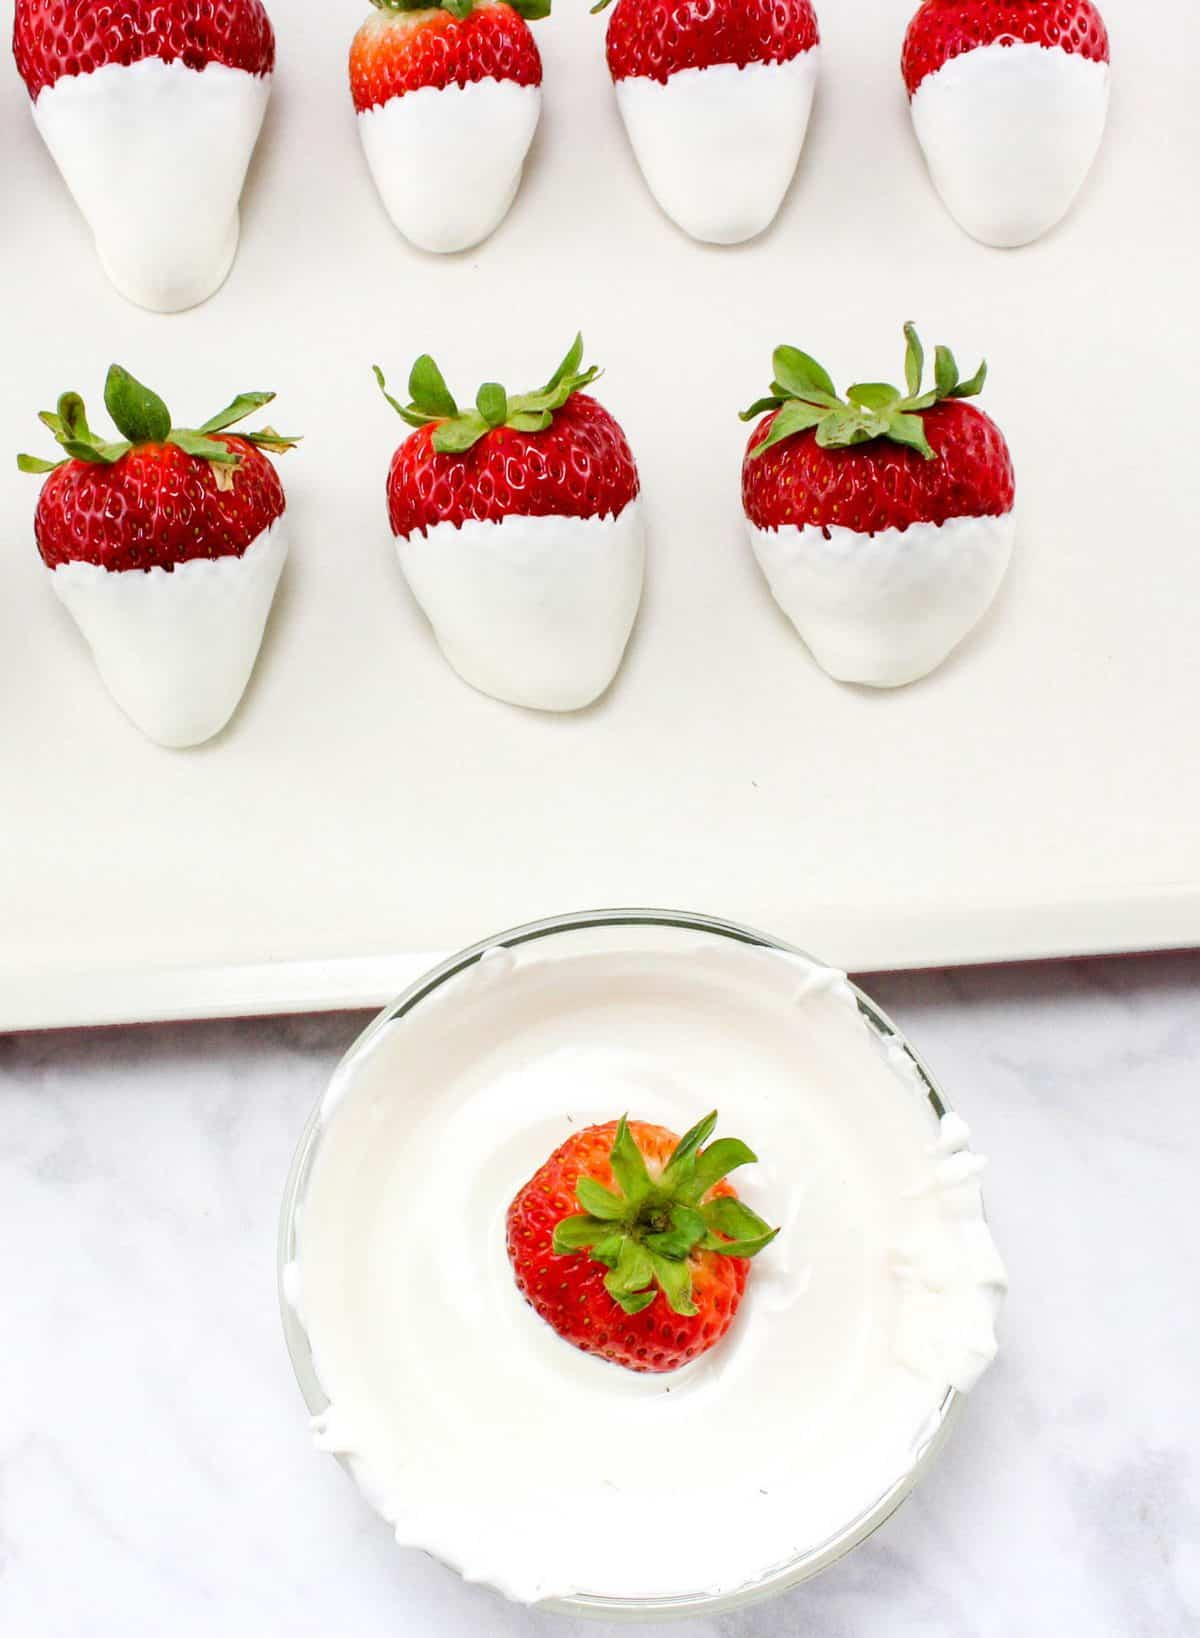 dipping strawberries in white chocolate